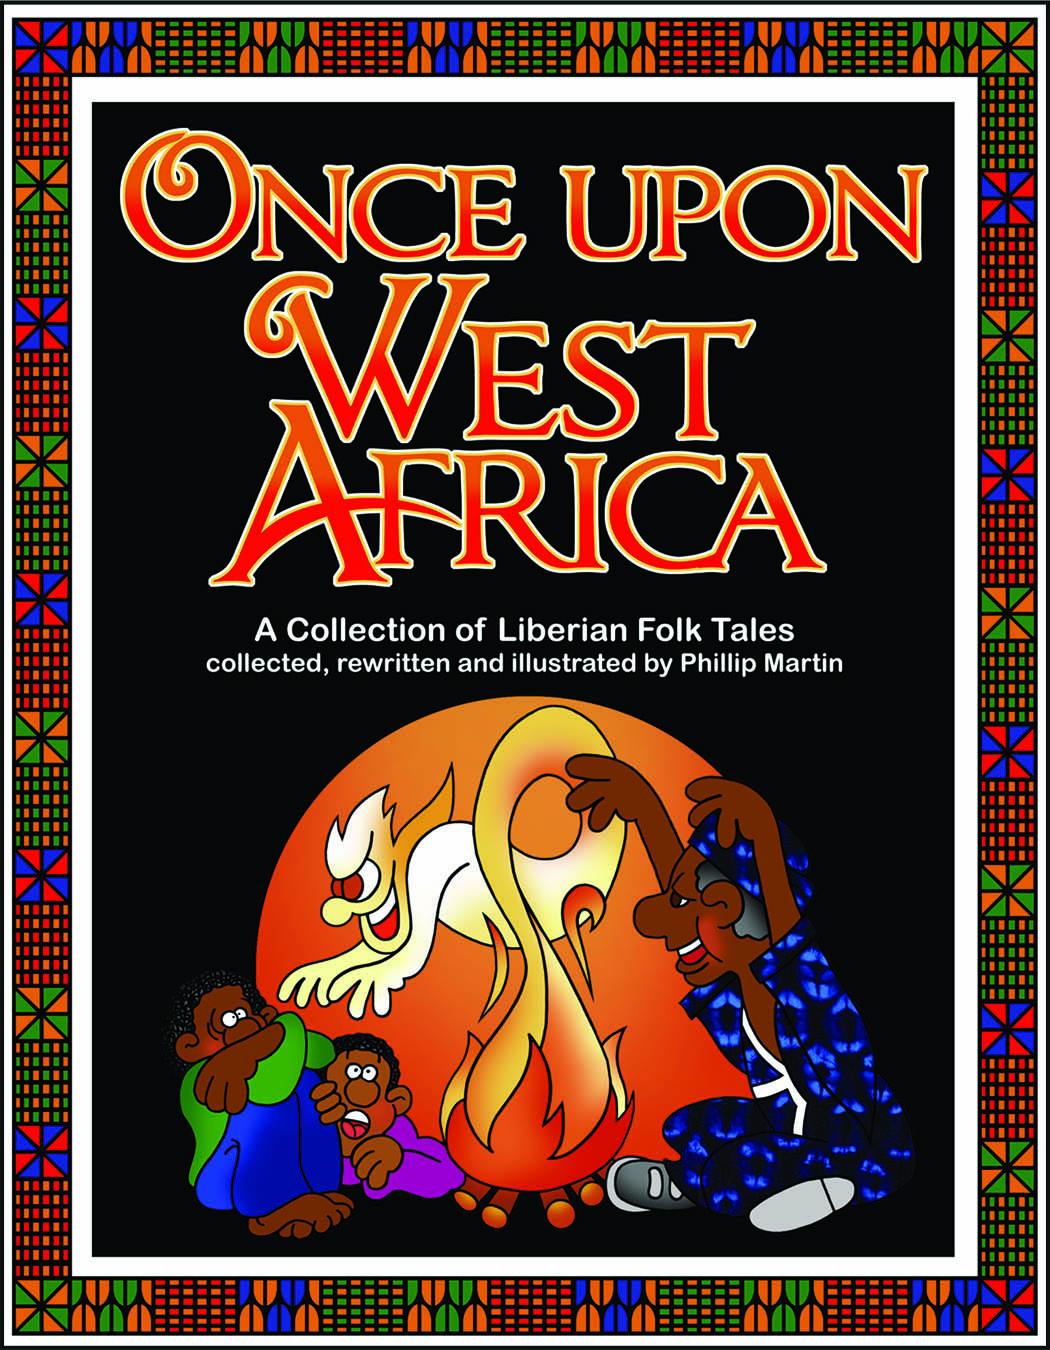 Once Upon West Africa: A Collection of Liberian Folk Tales